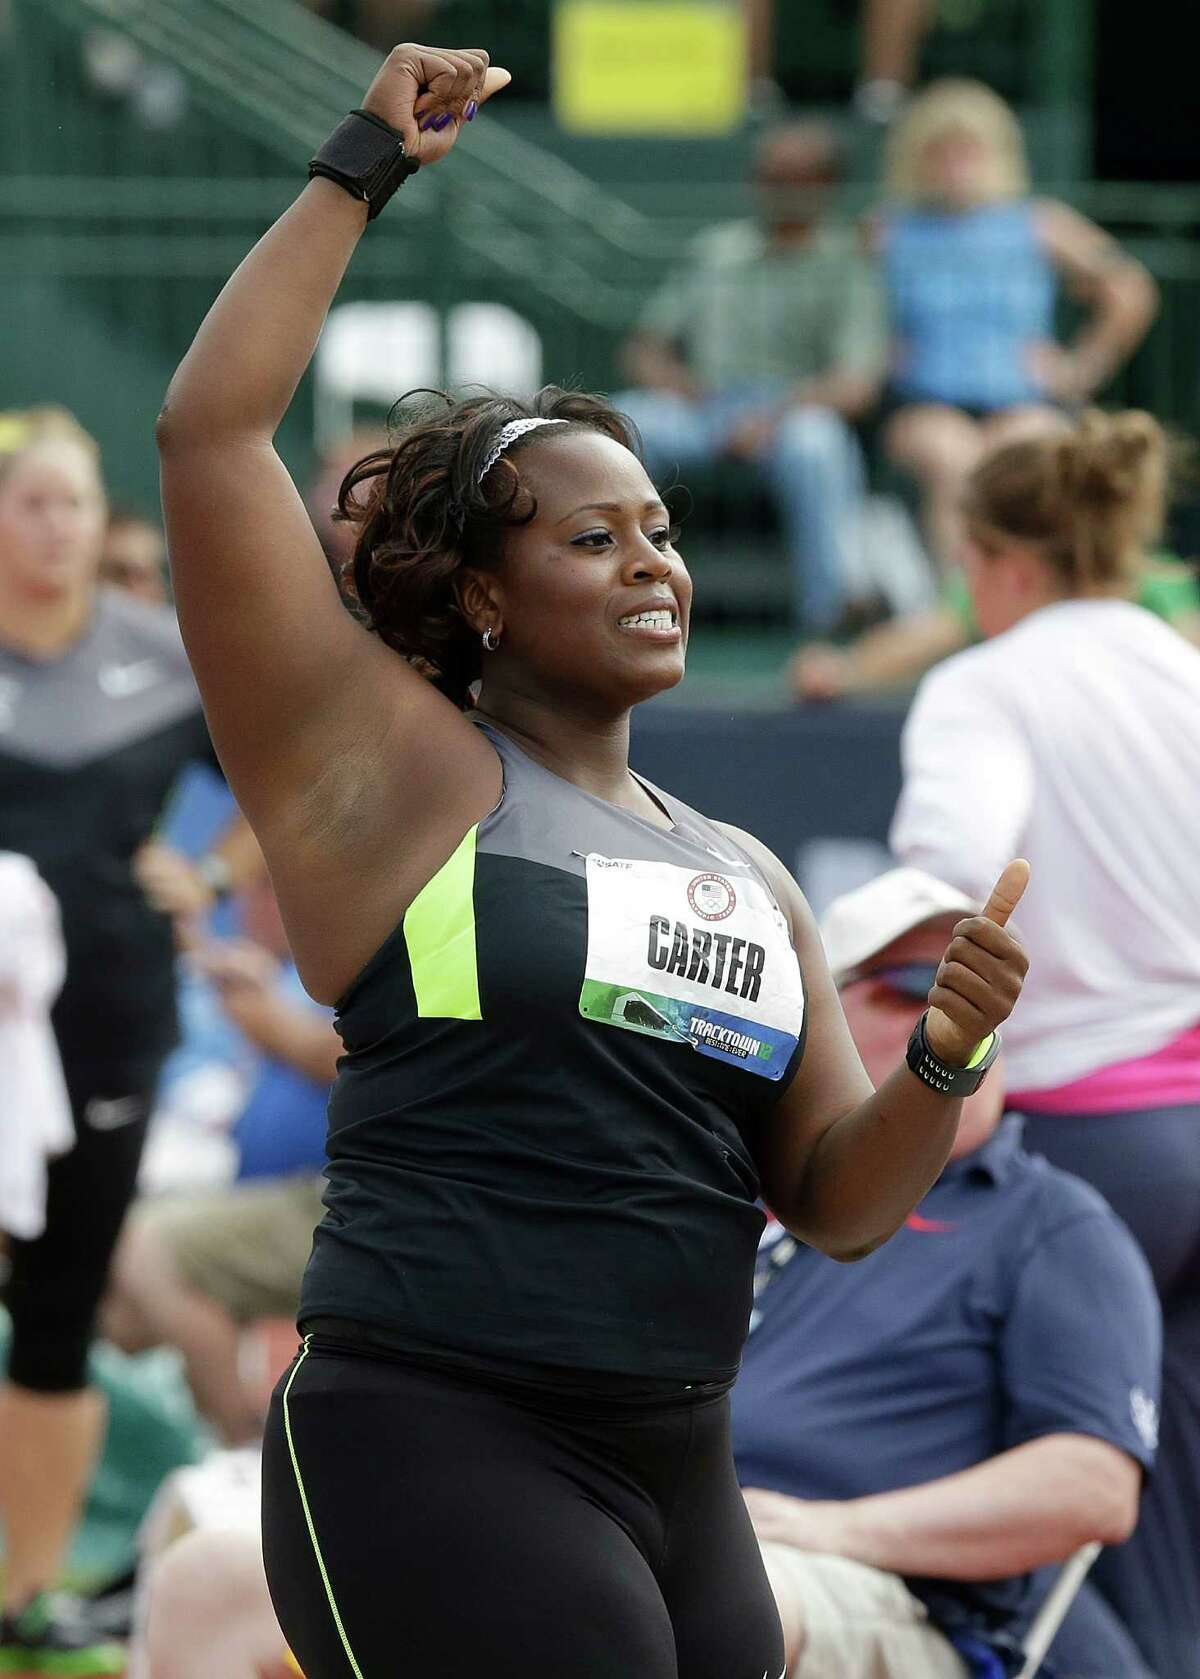 Michelle Carter reacts after the final round of the women's shot put at the U.S. Olympic Track and Field Trials Friday, June 29, 2012, in Eugene, Ore. Carter placed second. (AP Photo/Charlie Riedel)